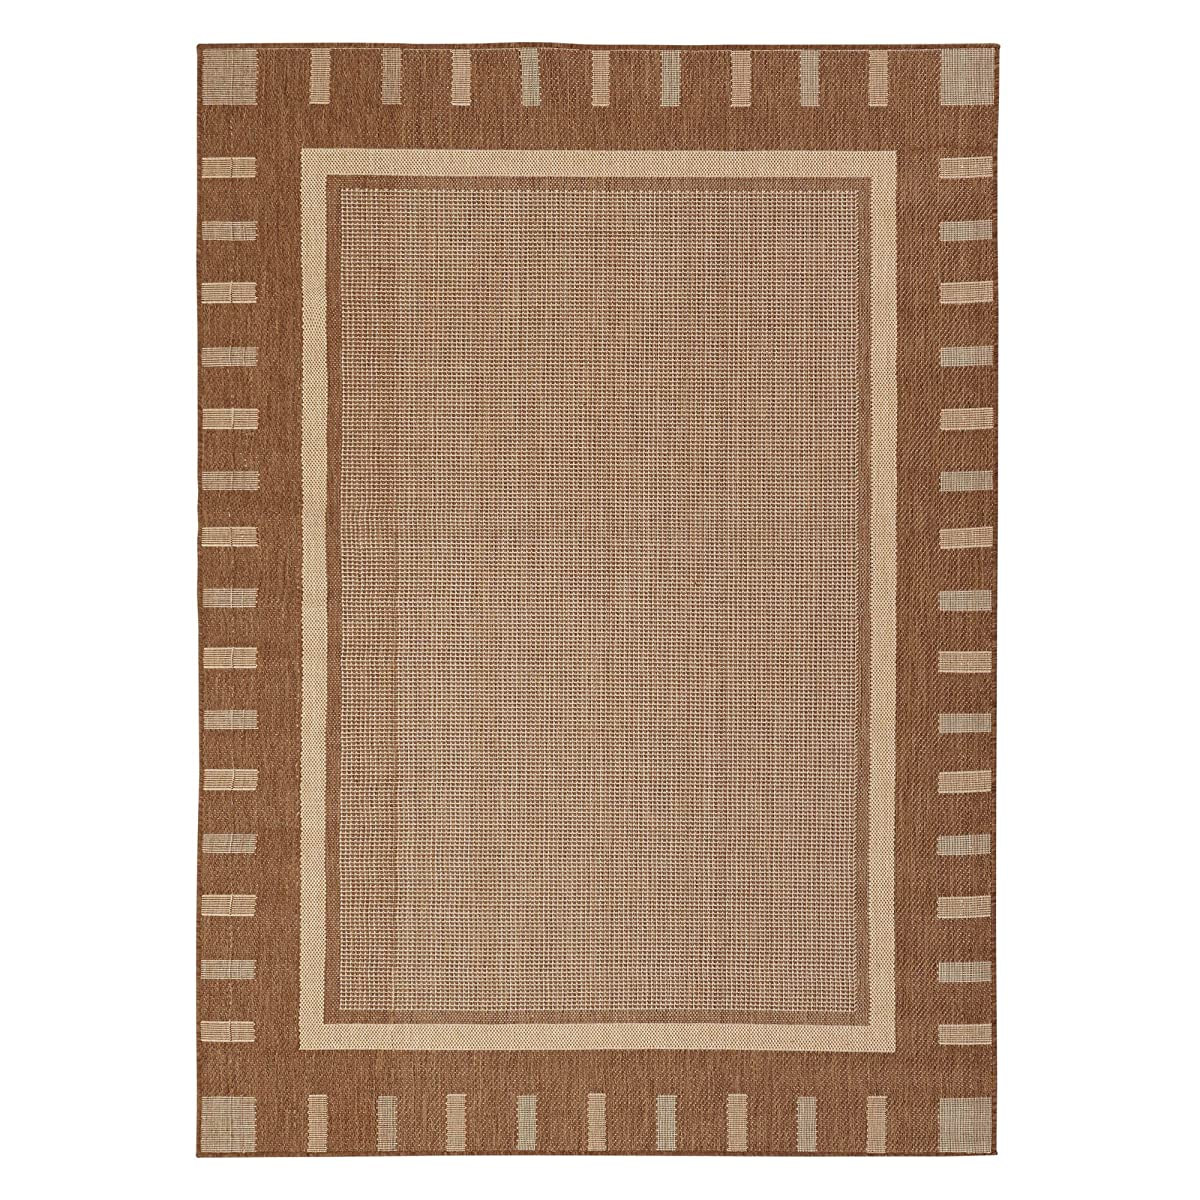 "Jardin Collection Brown Contemporary Bordered Design Indoor / Outdoor Jute Backing Area Rug (53""x73"")"